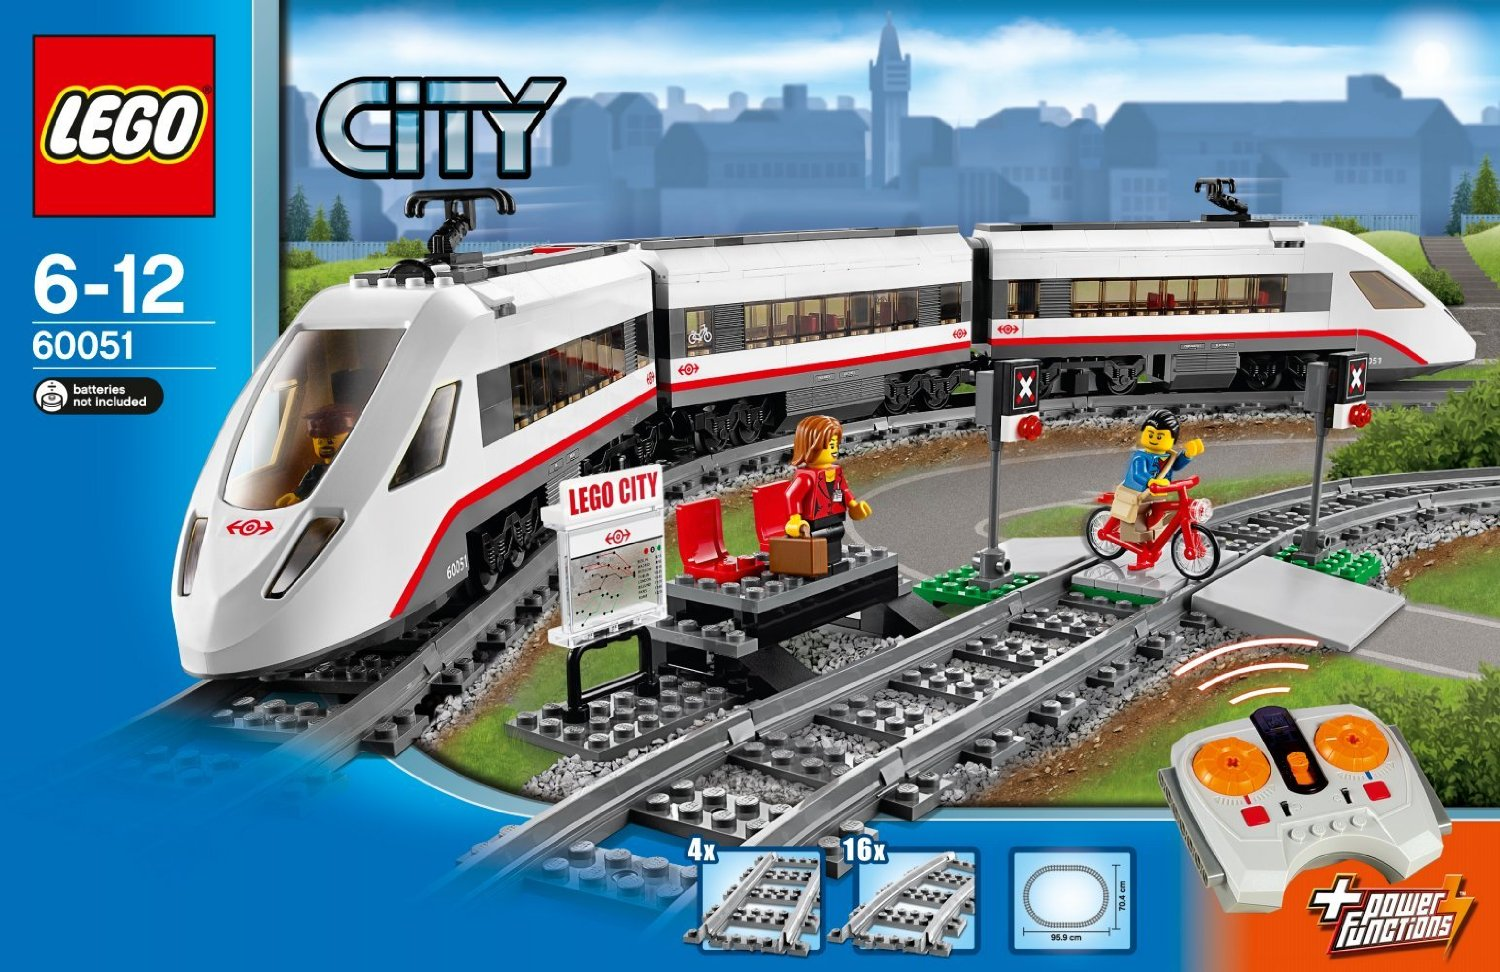 LEGO CITY 60051 High-speed Passenger Train